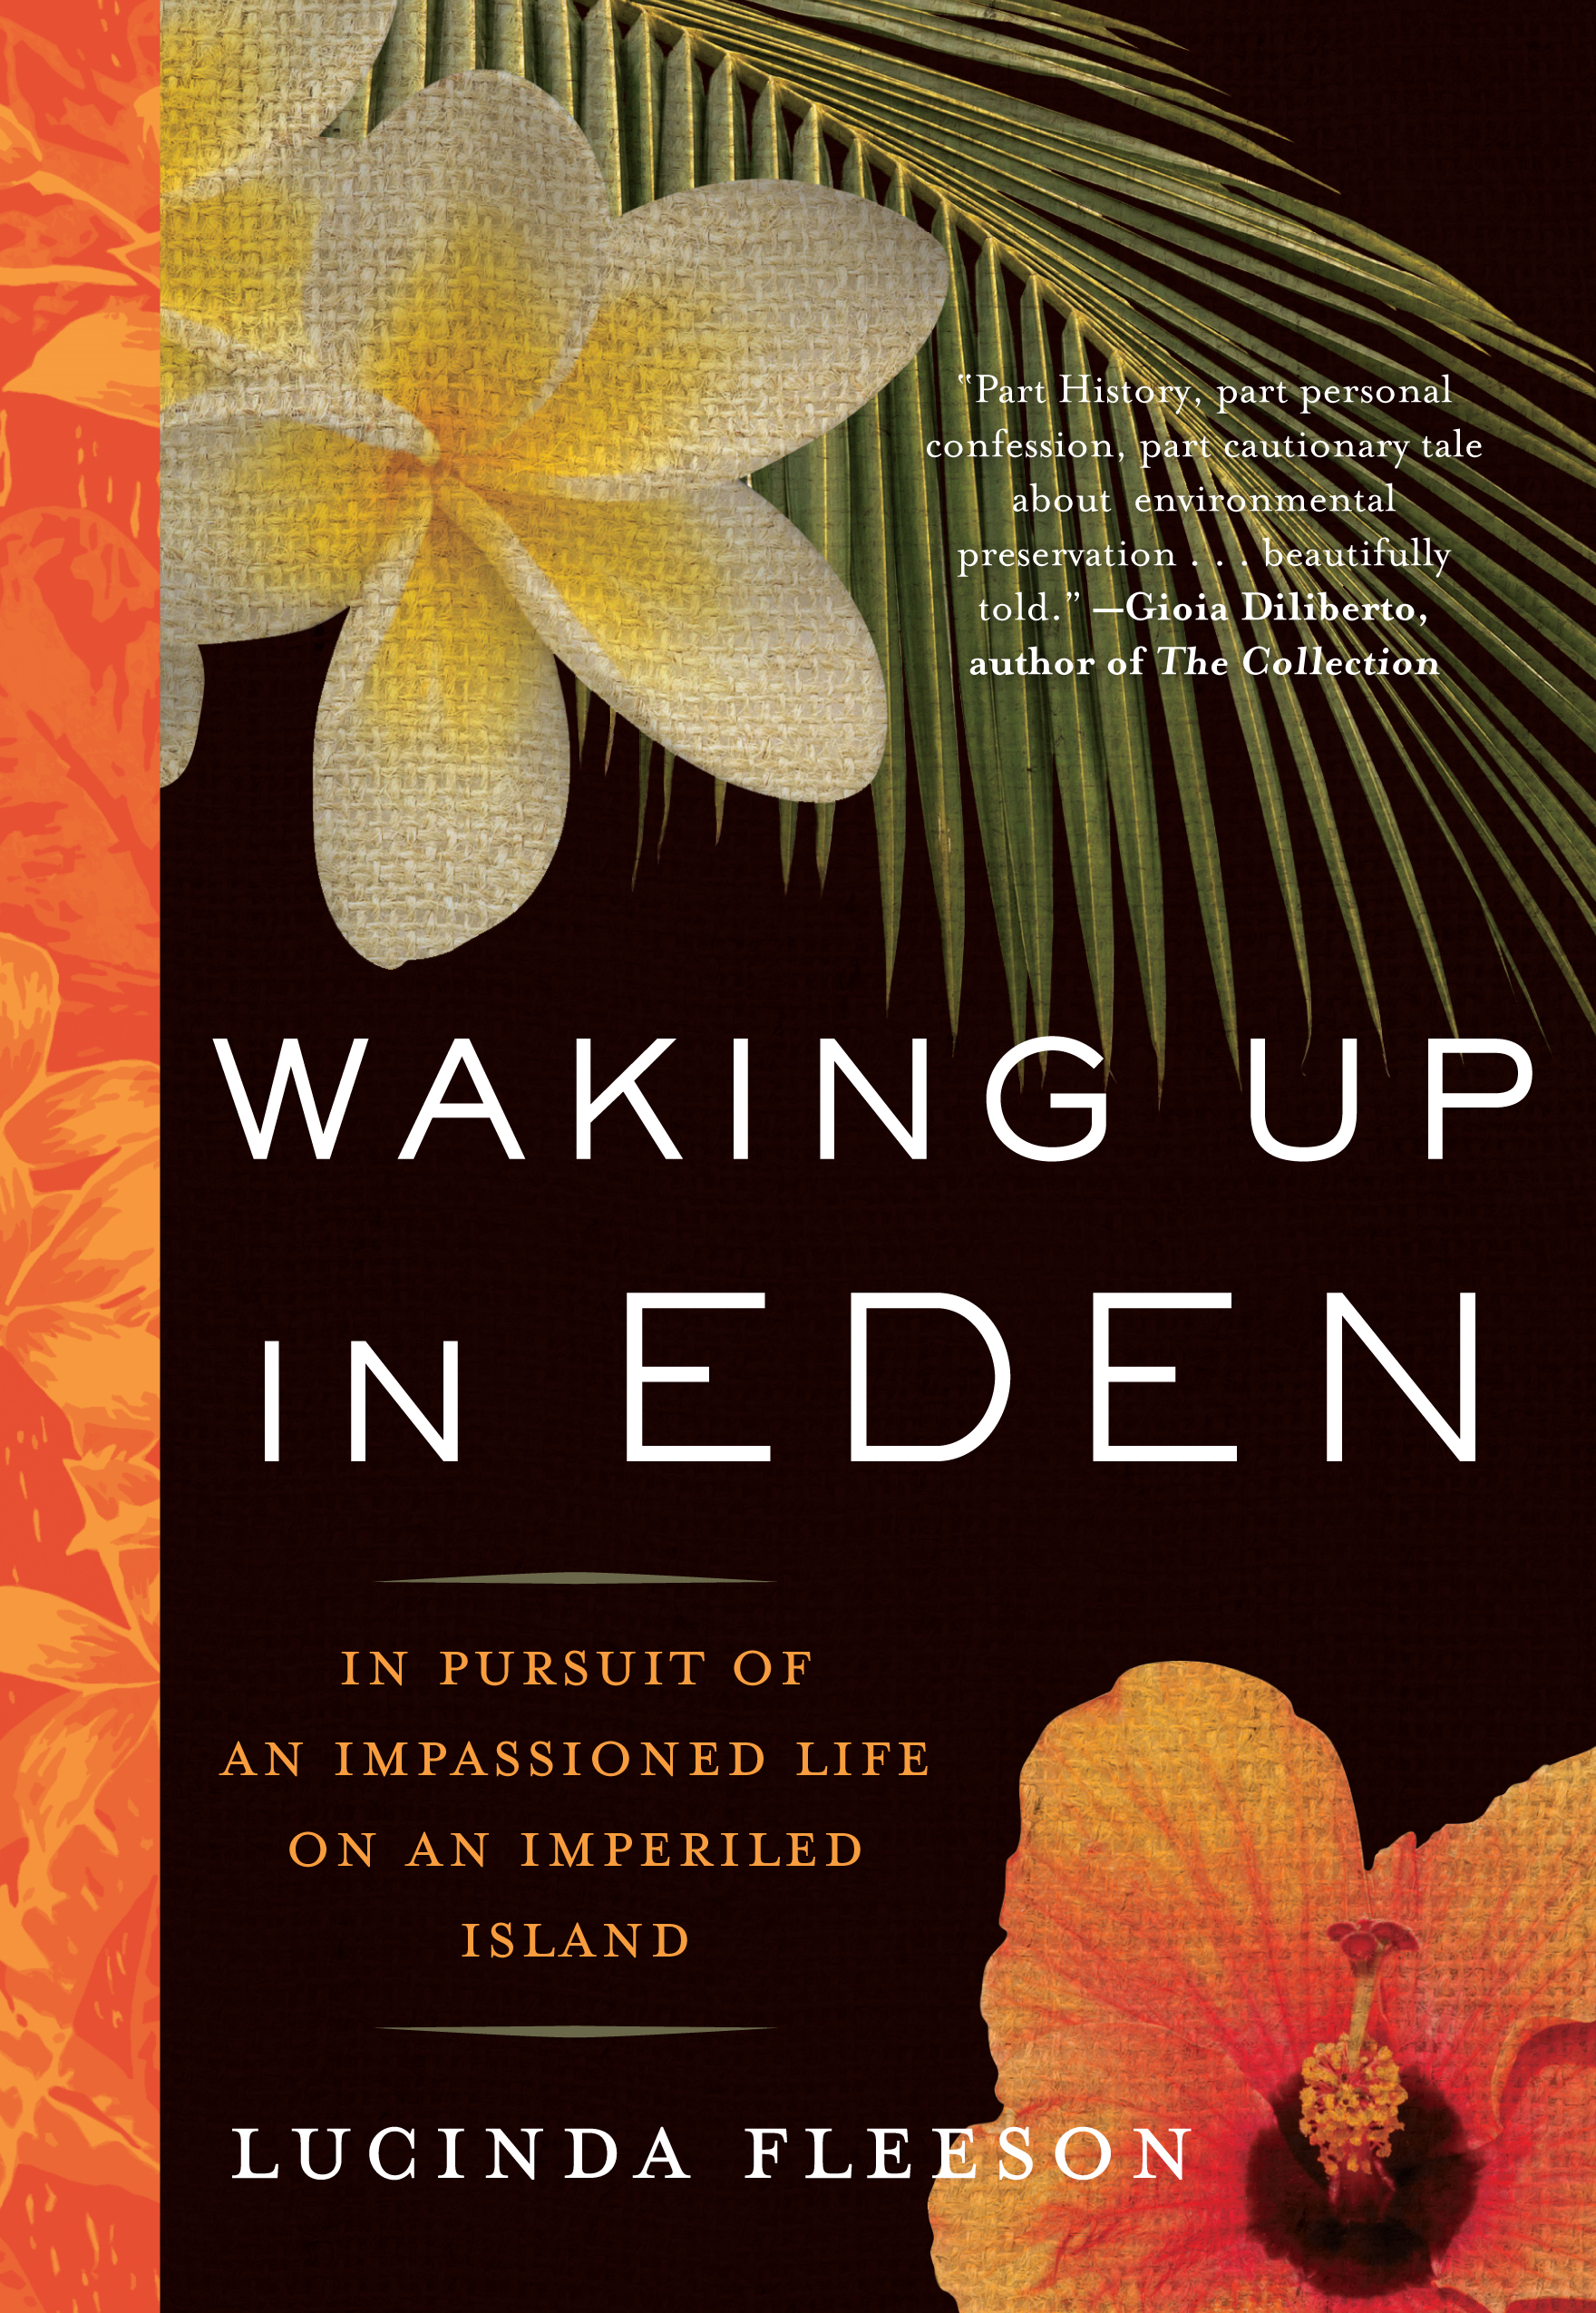 Waking Up in Eden: In Pursuit of an Impassioned Life on an Imperiled Island By: Lucinda Fleeson